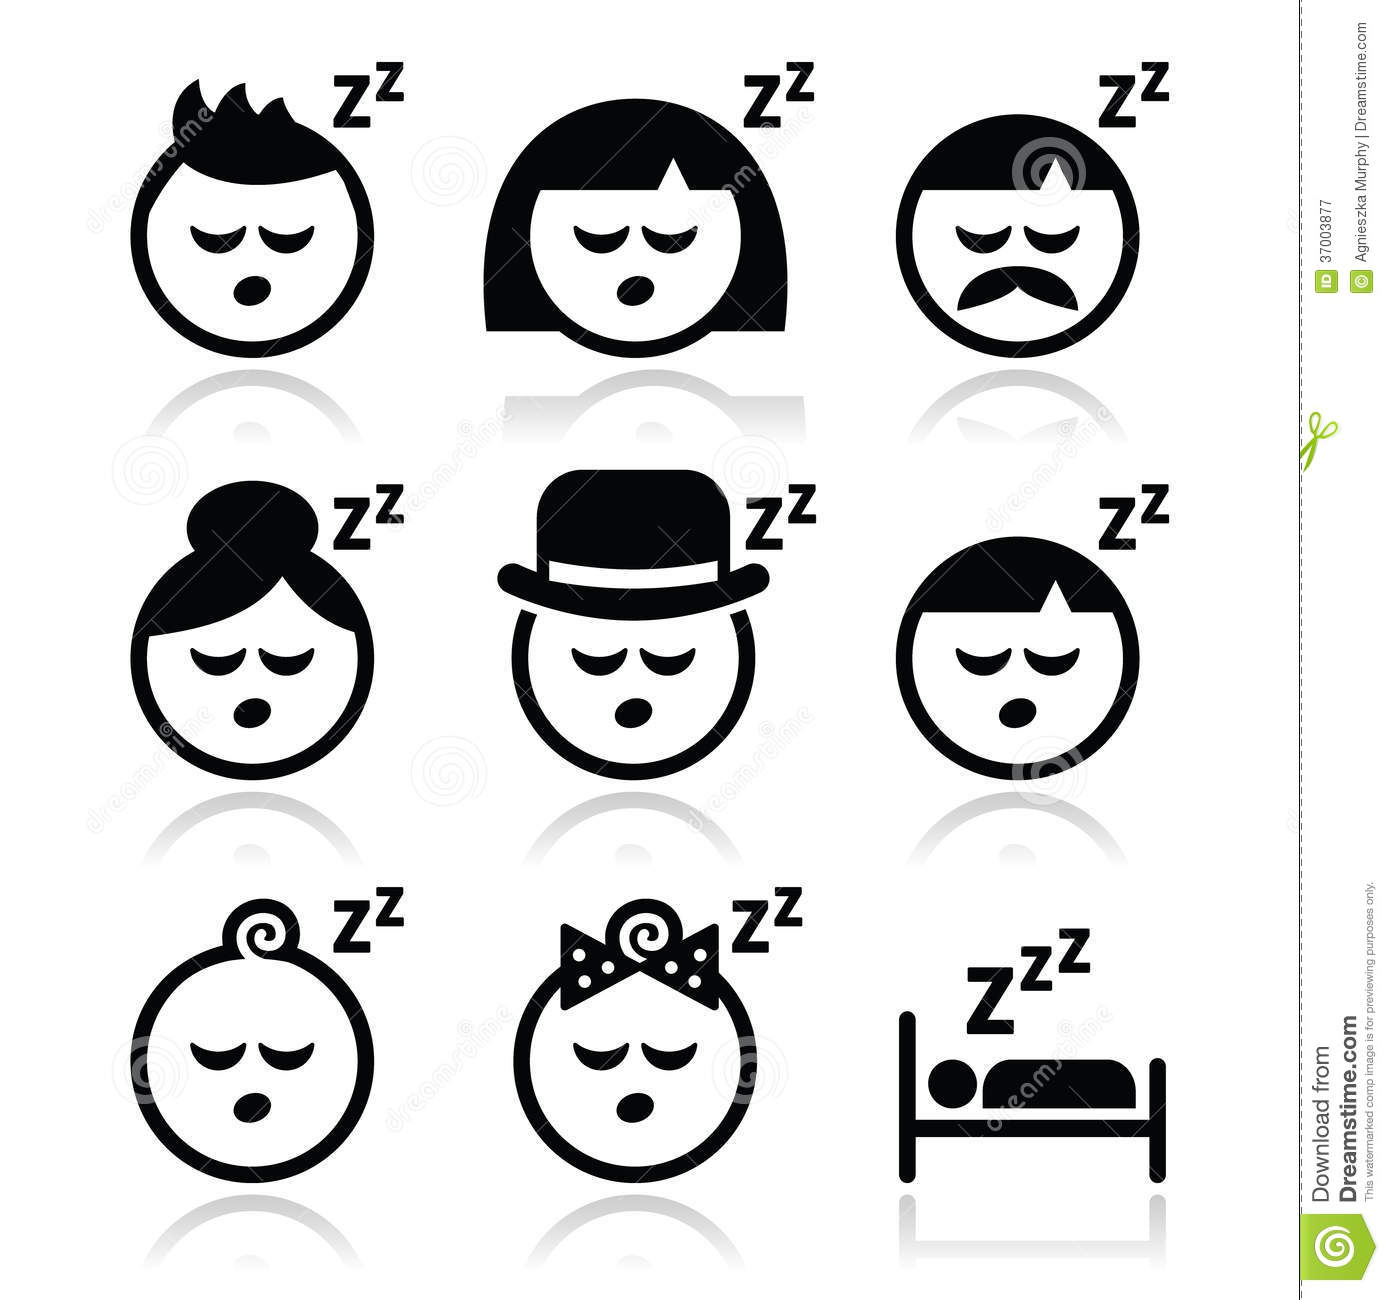 Sleeping Dreaming People Faces Icons Set Cartoon Vector